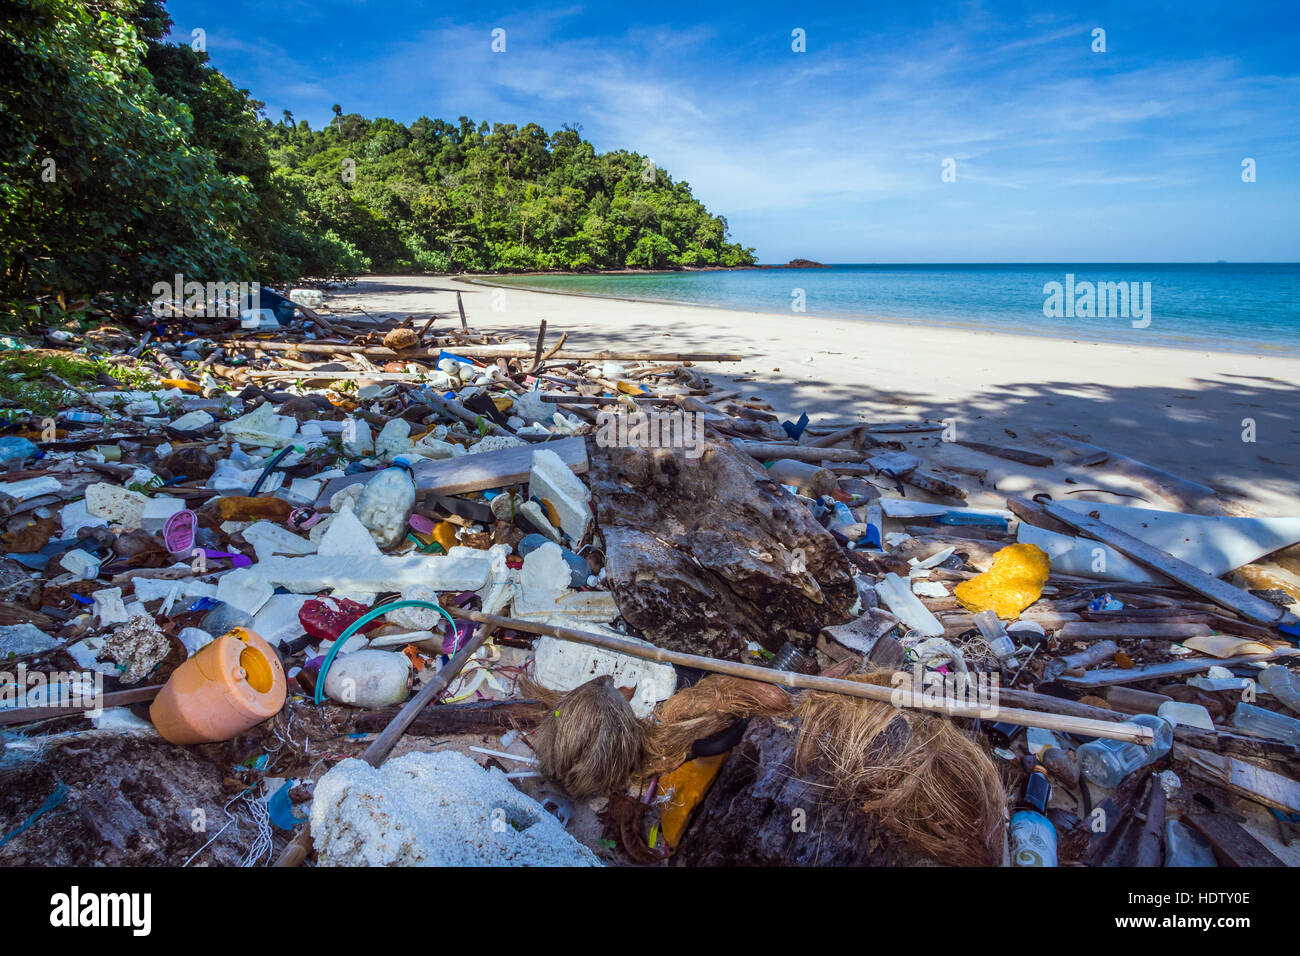 Polluted beach with rubbish in national park of Thailand - Stock Image